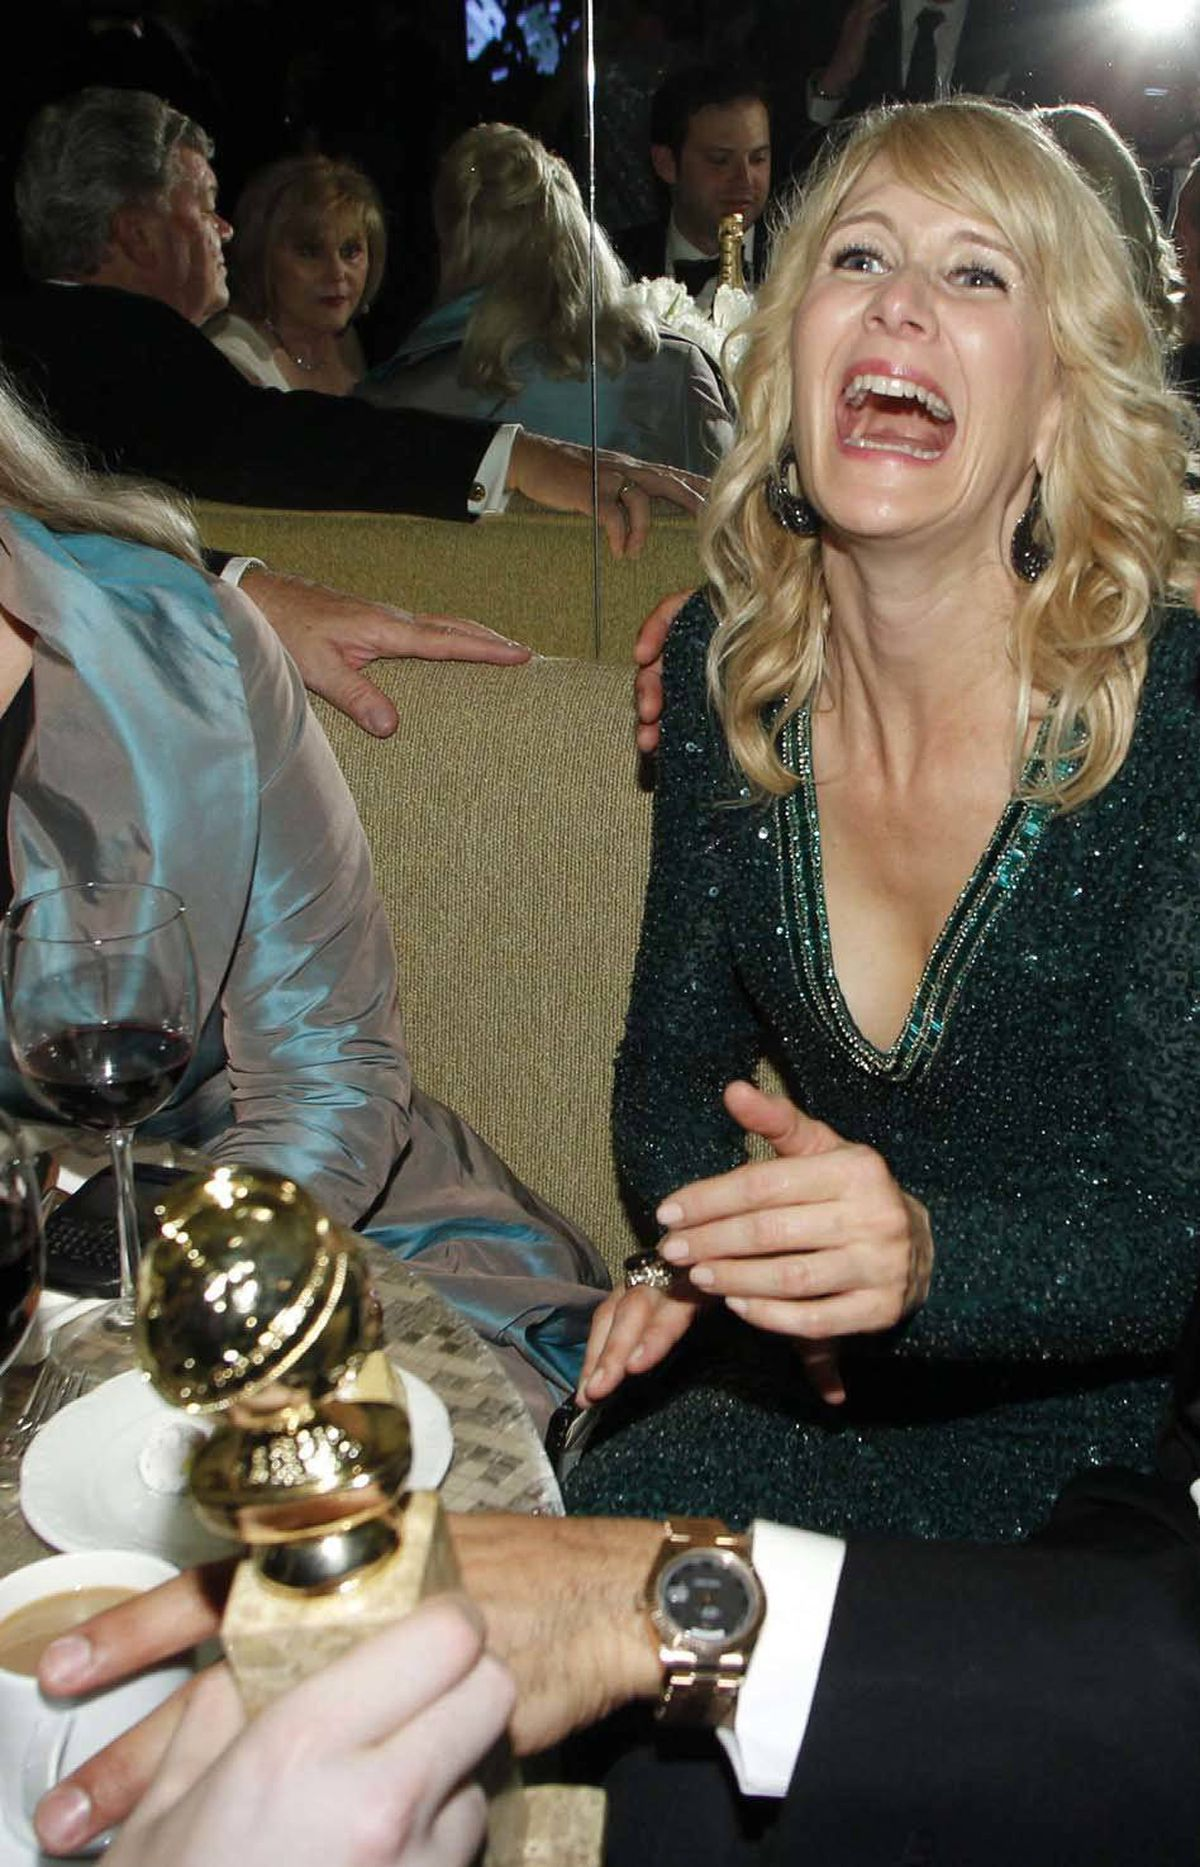 Laura Dern, who moments earlier was seen talking to Gerard Butler, agrees to try and fit her Golden Globe award in her mouth at the HBO after-party in Beverly Hills Sunday night.